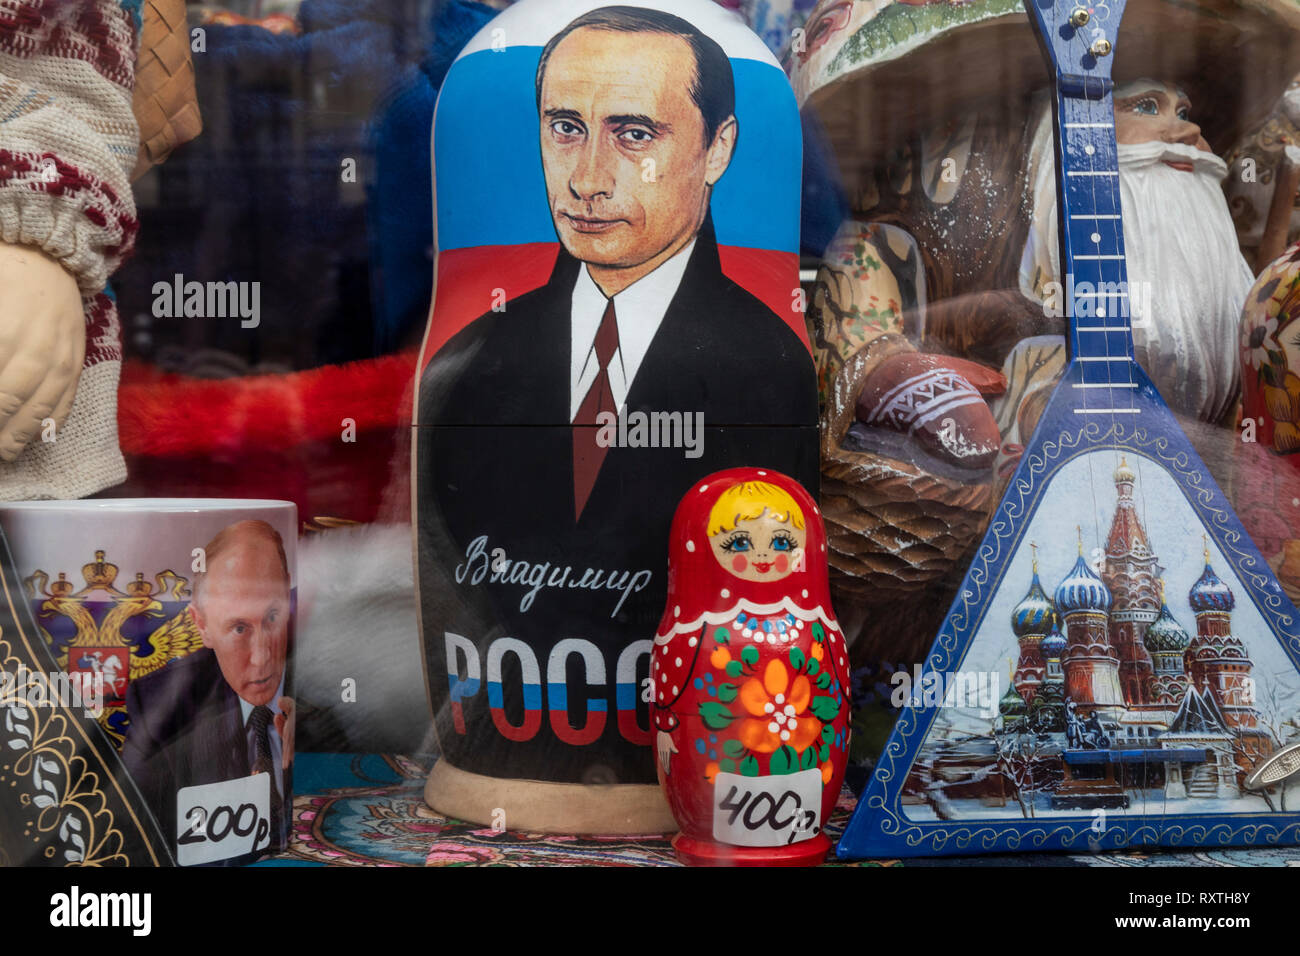 Russian traditional symbols - Matryoshka, Vladimir Putin portraits and balalaika in souvenir kiosk at central street in Moscow, Russia - Stock Image